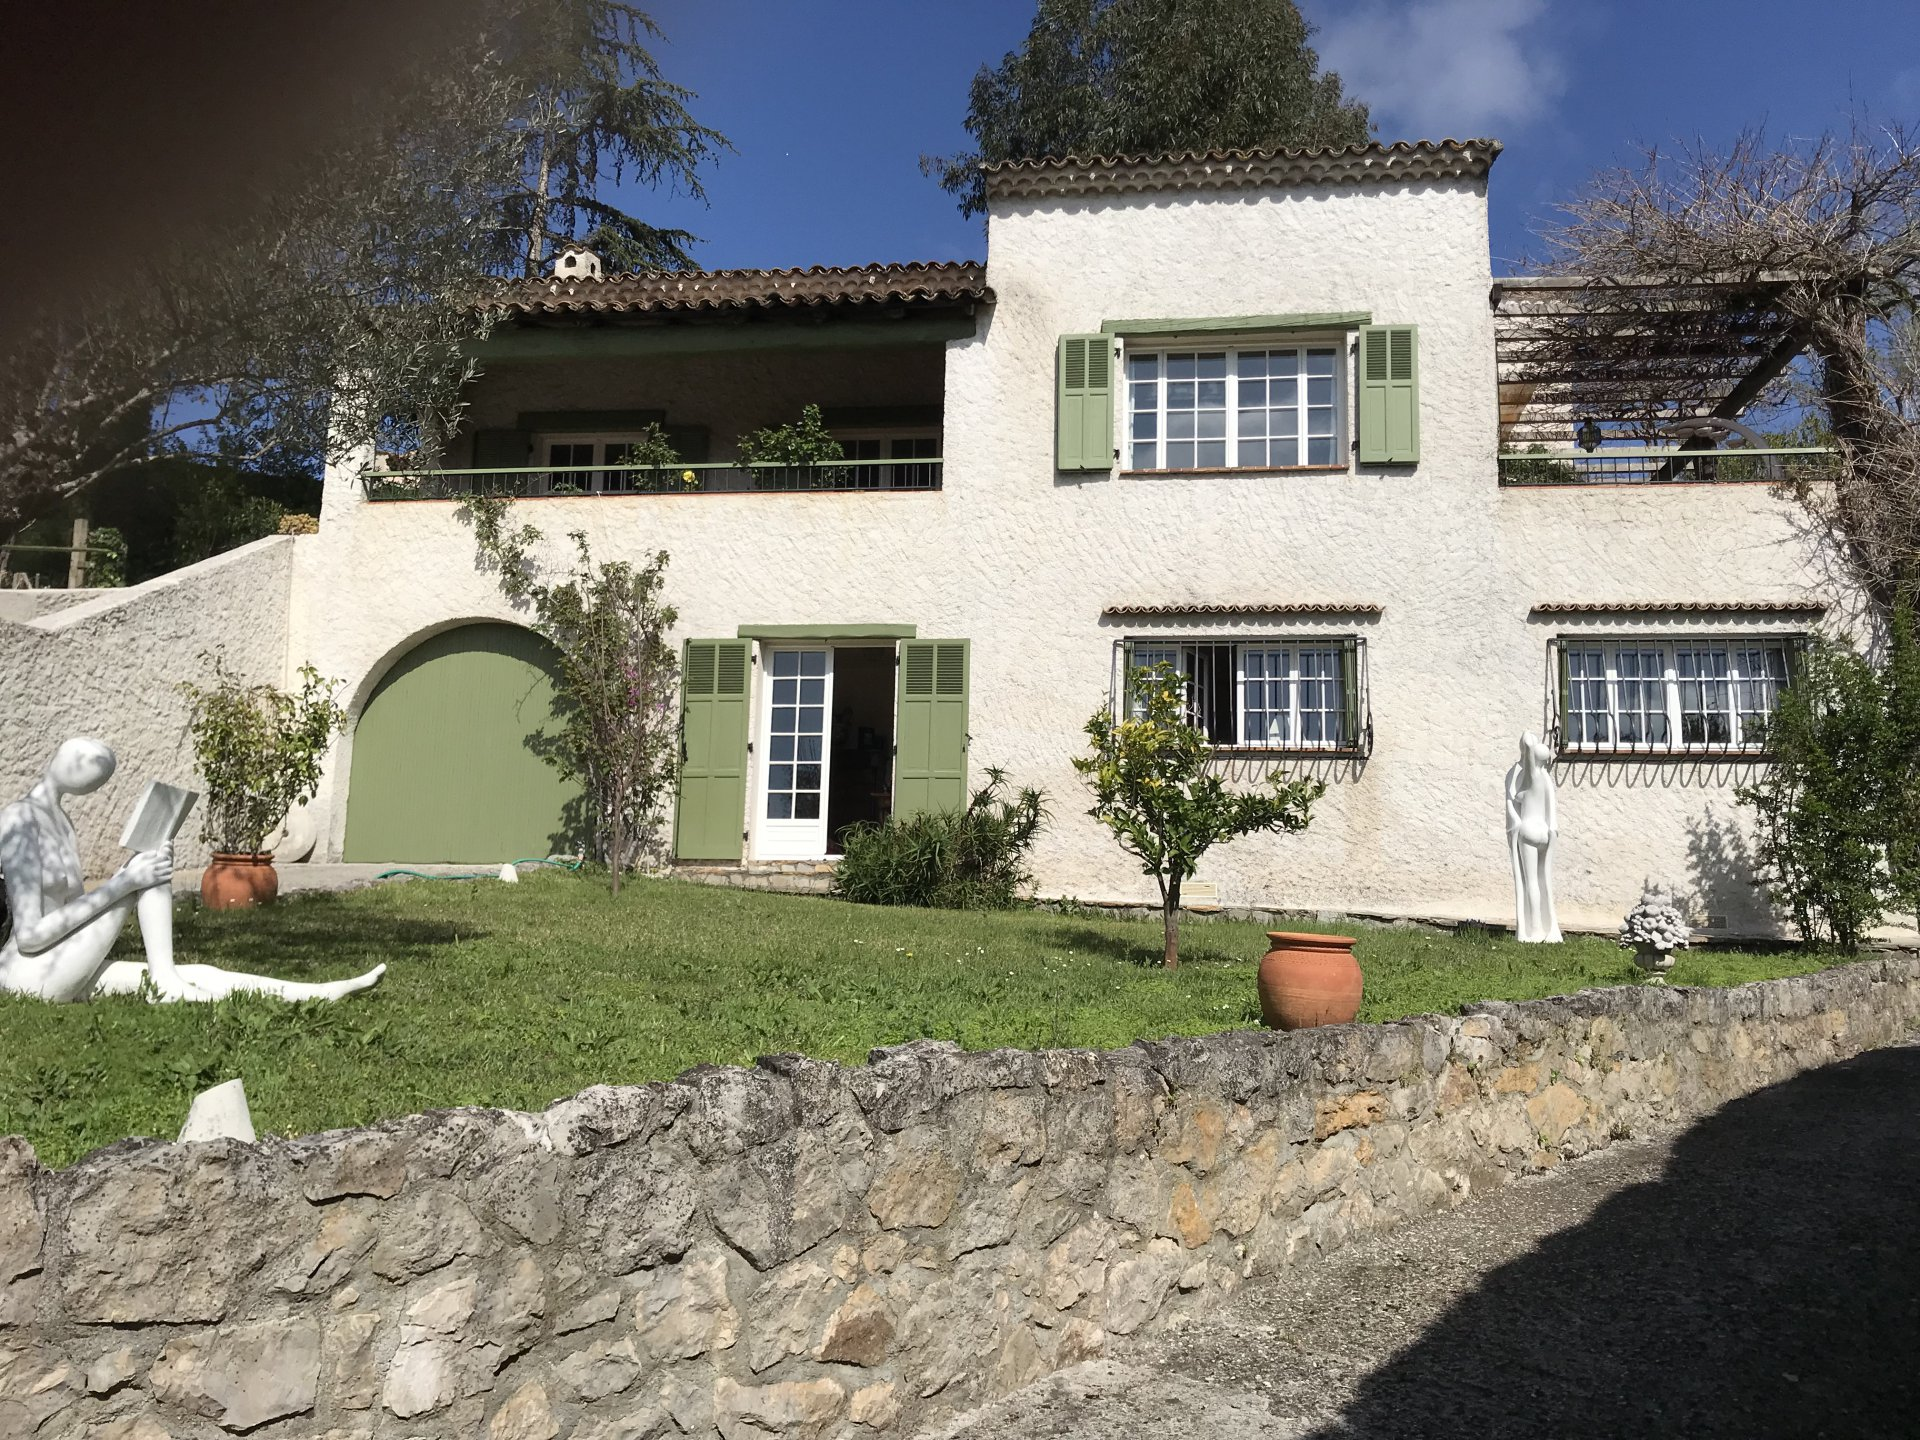 La Colle sur Loup, property in a residential area